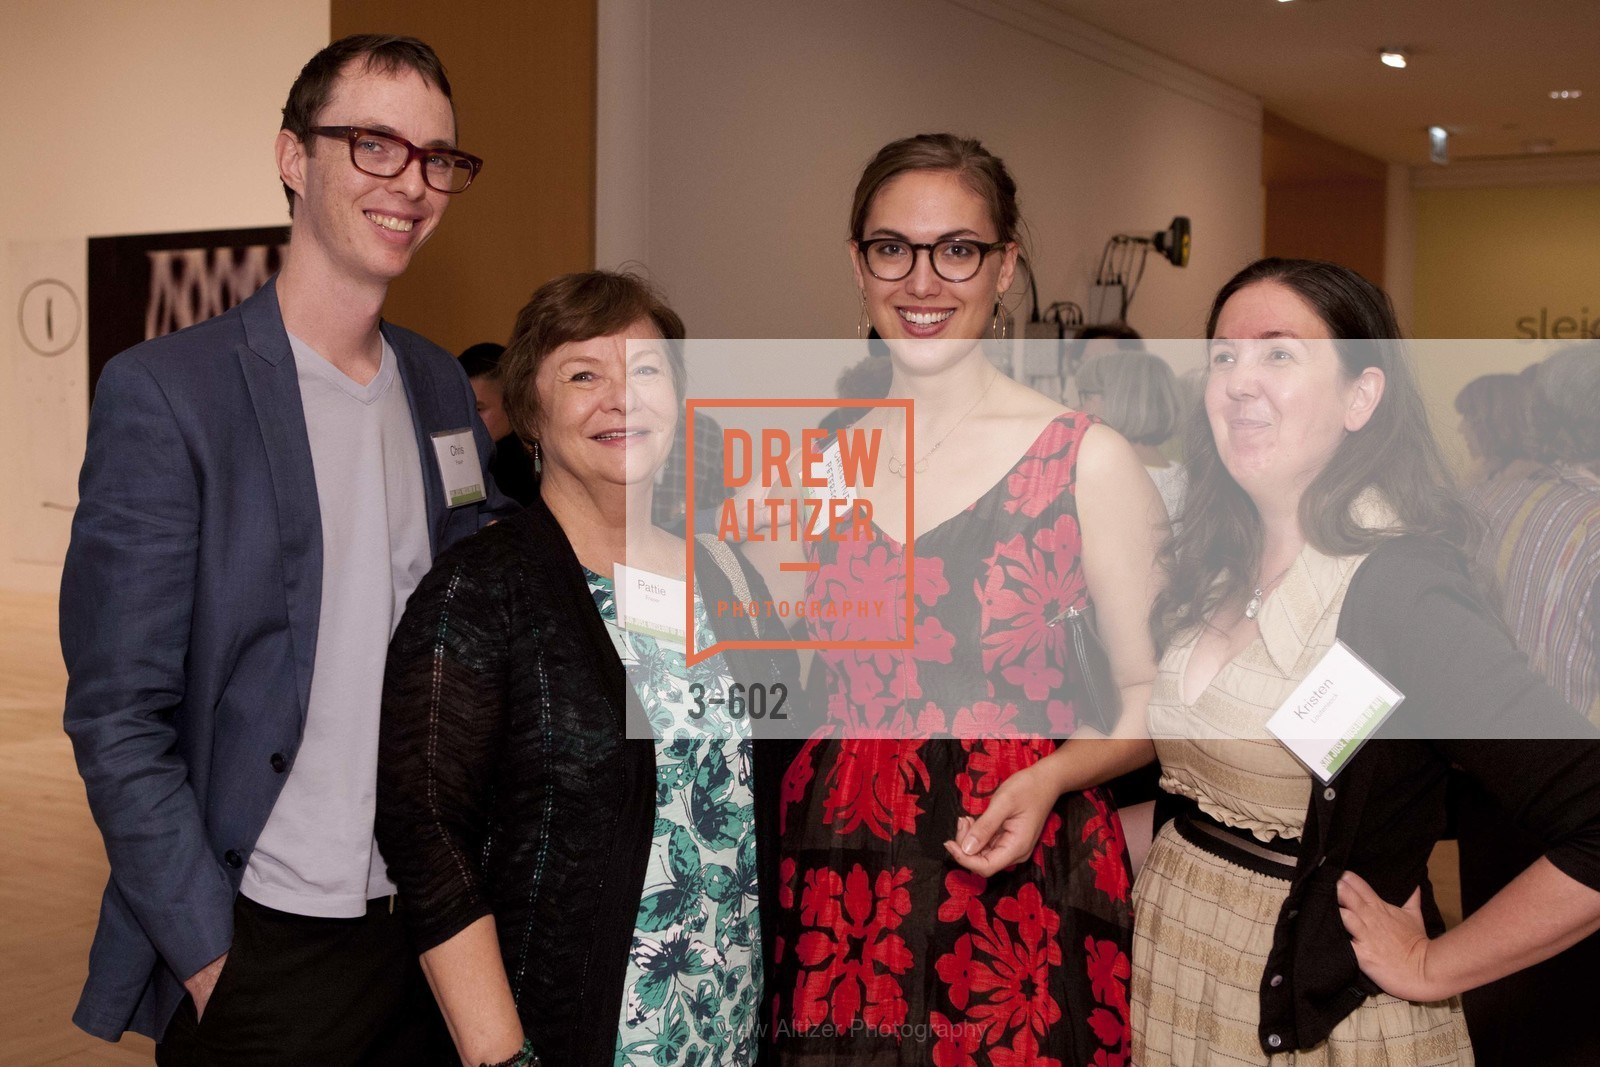 Chris Fraser, Patty Fraser, Christine Peterson, Kristen Loutensock, SAN JOSE MUSEUM OF ART Fall Reception Opening, US, October 9th, 2014,Drew Altizer, Drew Altizer Photography, full-service agency, private events, San Francisco photographer, photographer california